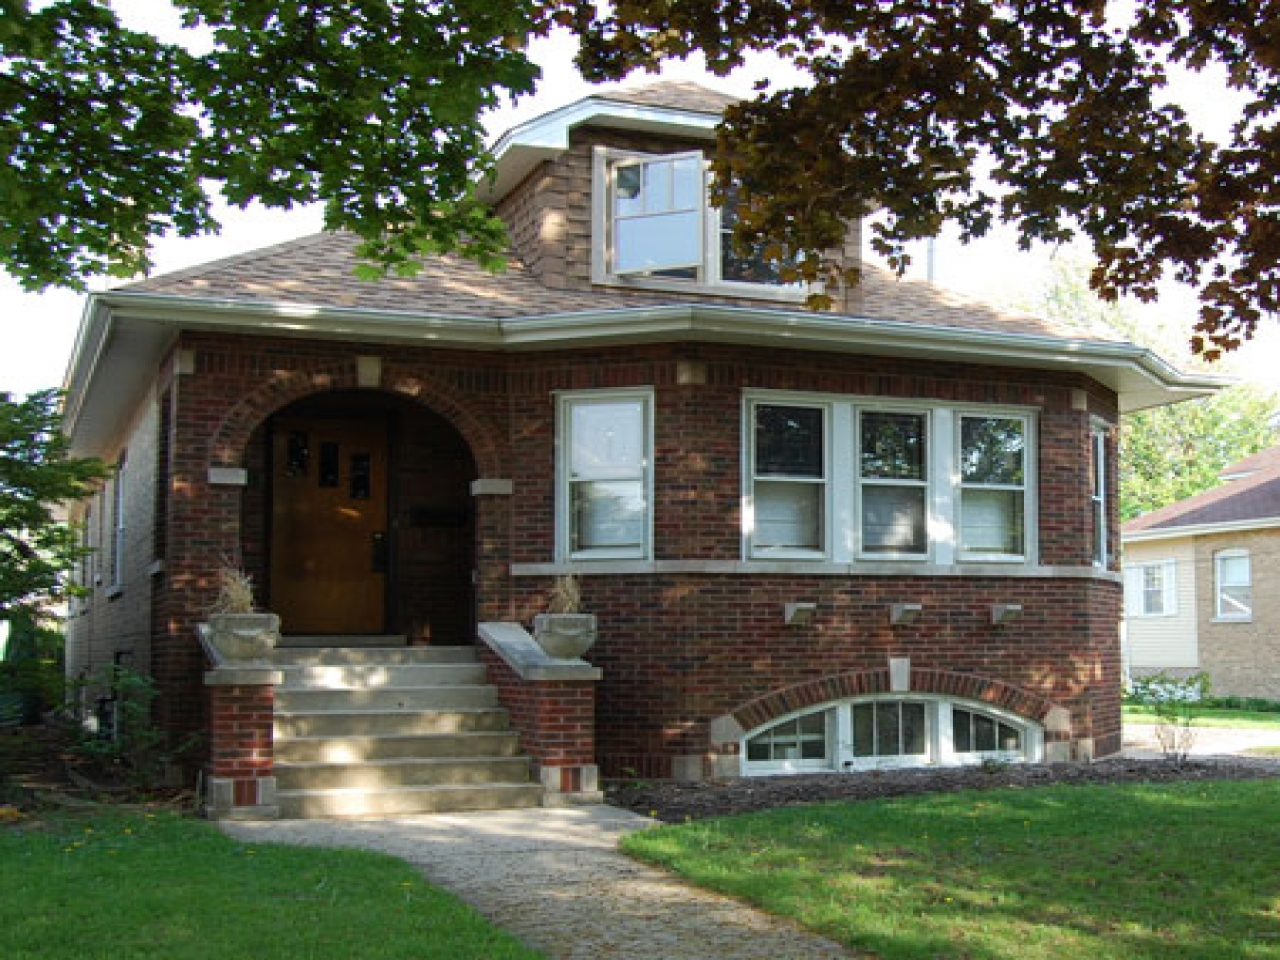 Chicago Bungalow Style Homes Chicago Style Brick Bungalow